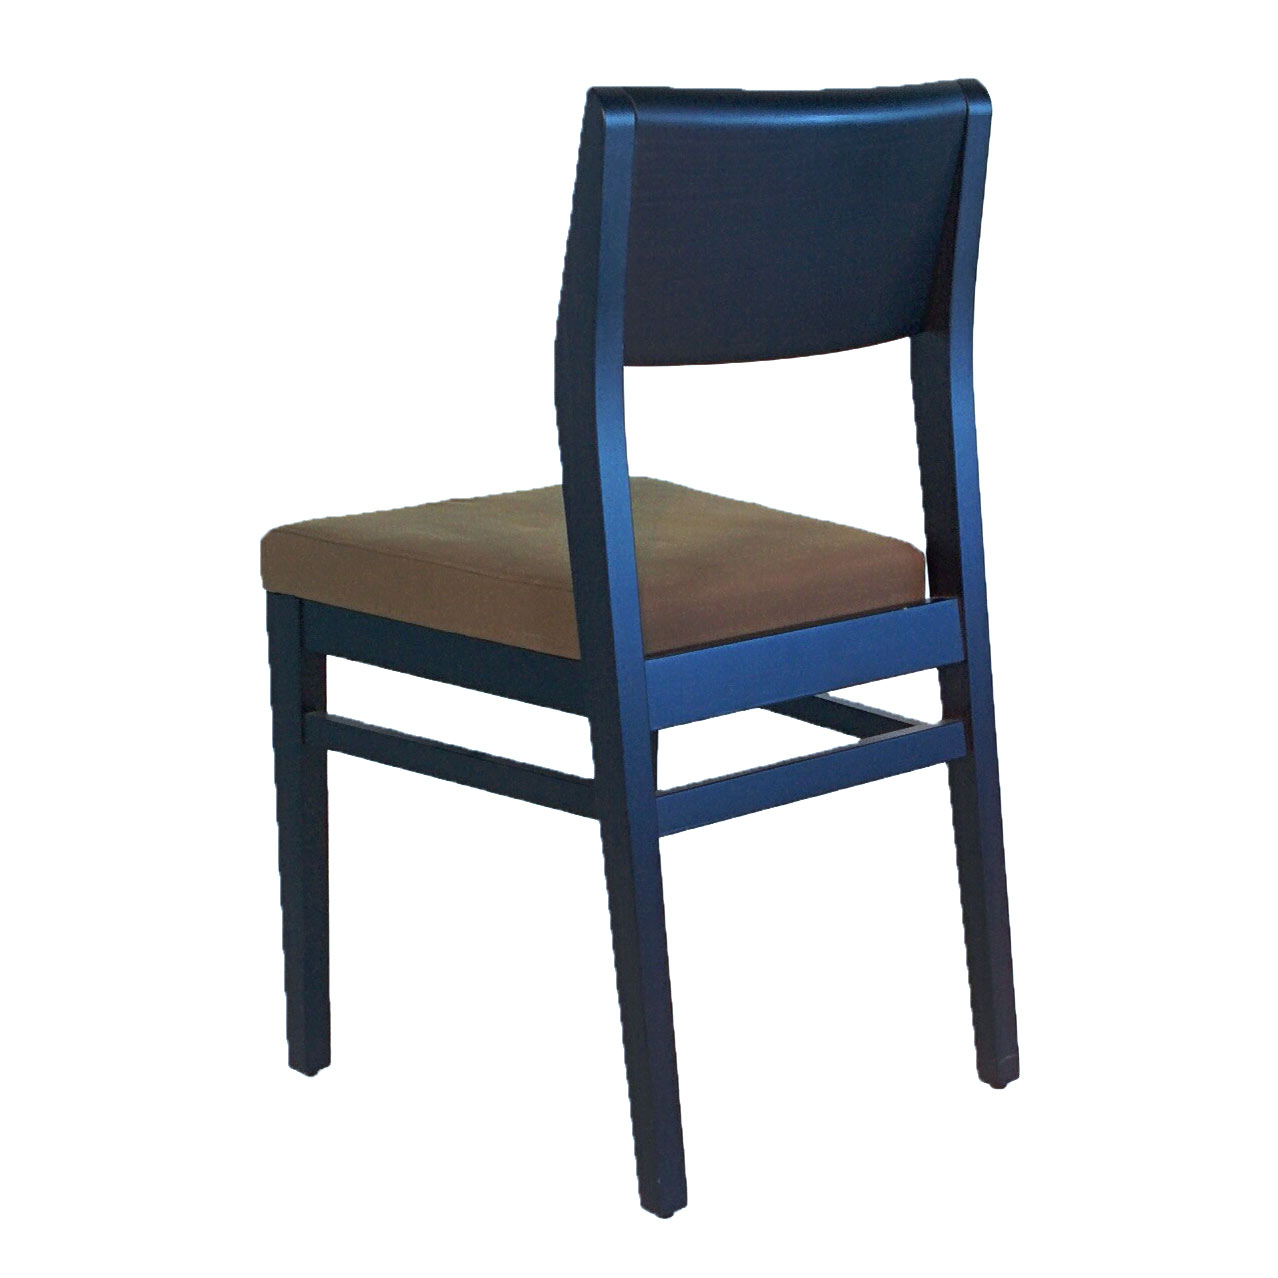 Armstrong Stackable Chair  Maries Corner Outlet